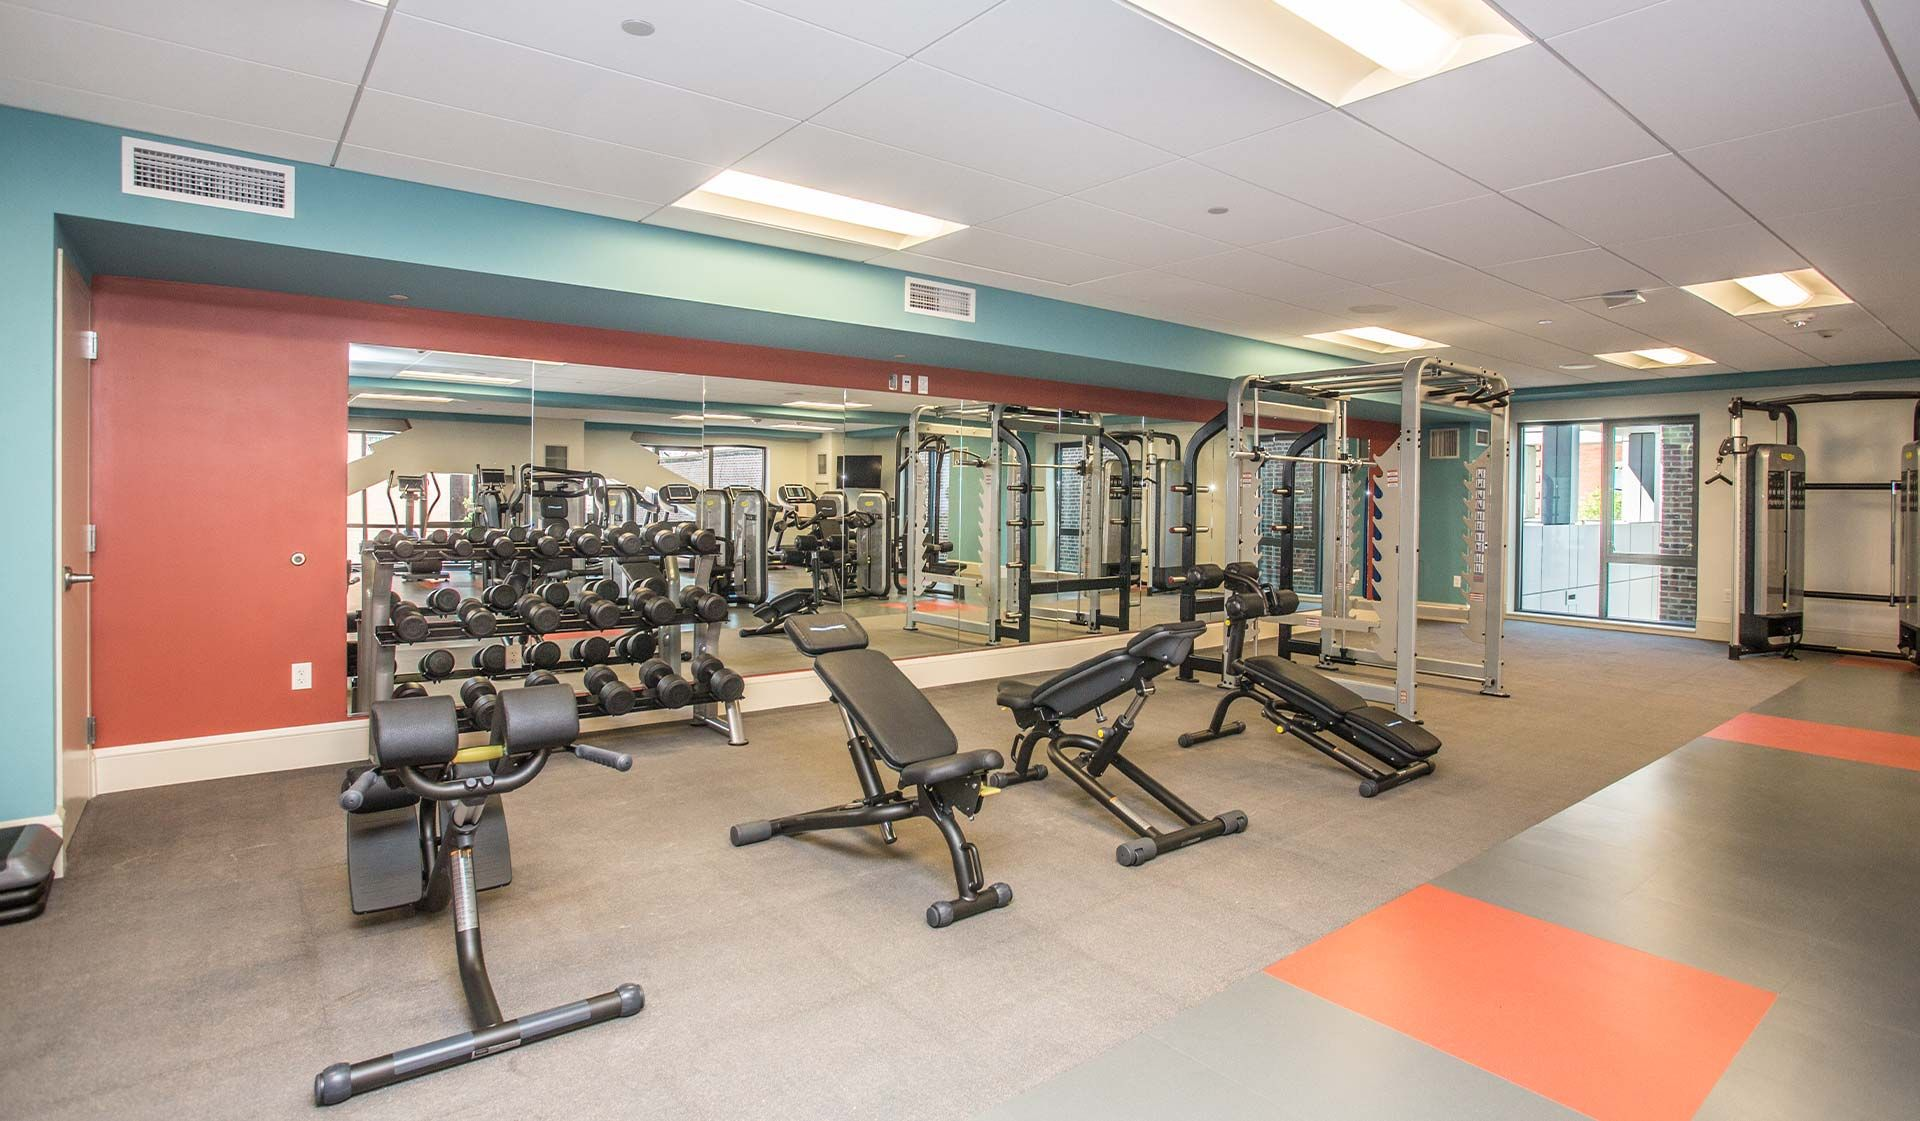 The Fitness Center Is Equipped With Both Free And Machine Weights Apartment Home Apartment Living